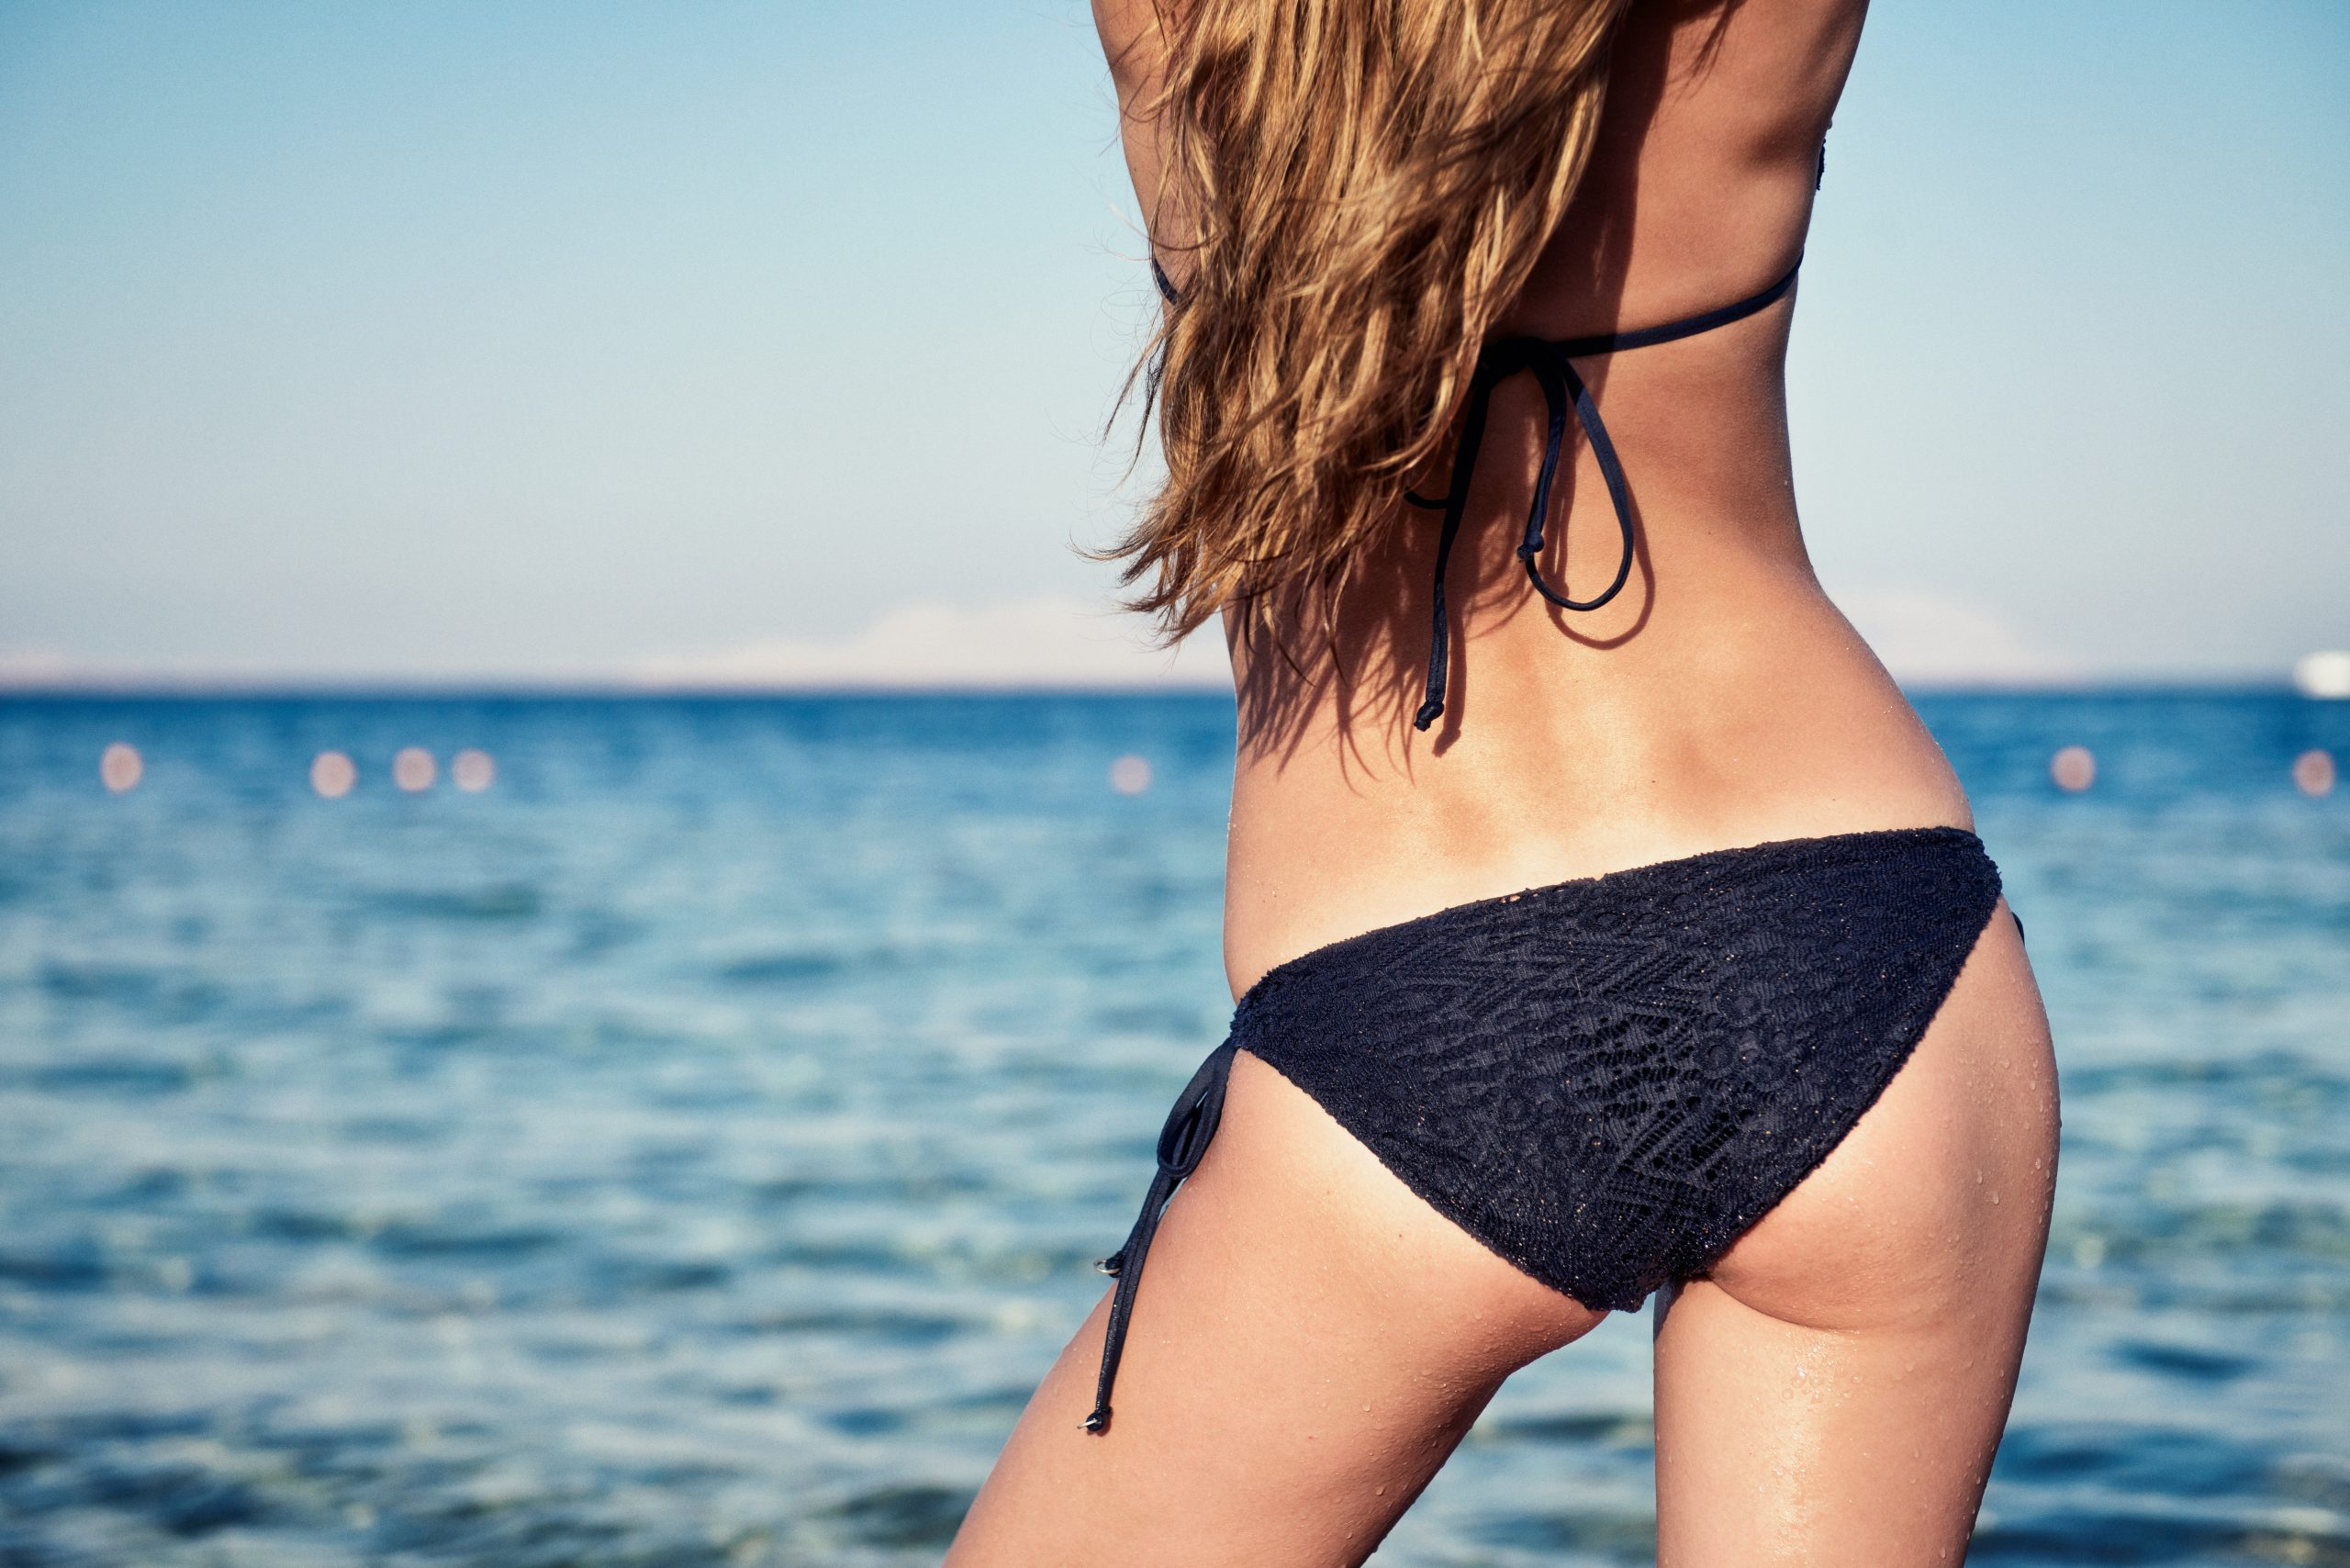 Why Sculptra May Not Be the Best Choice for Butt Augmentation